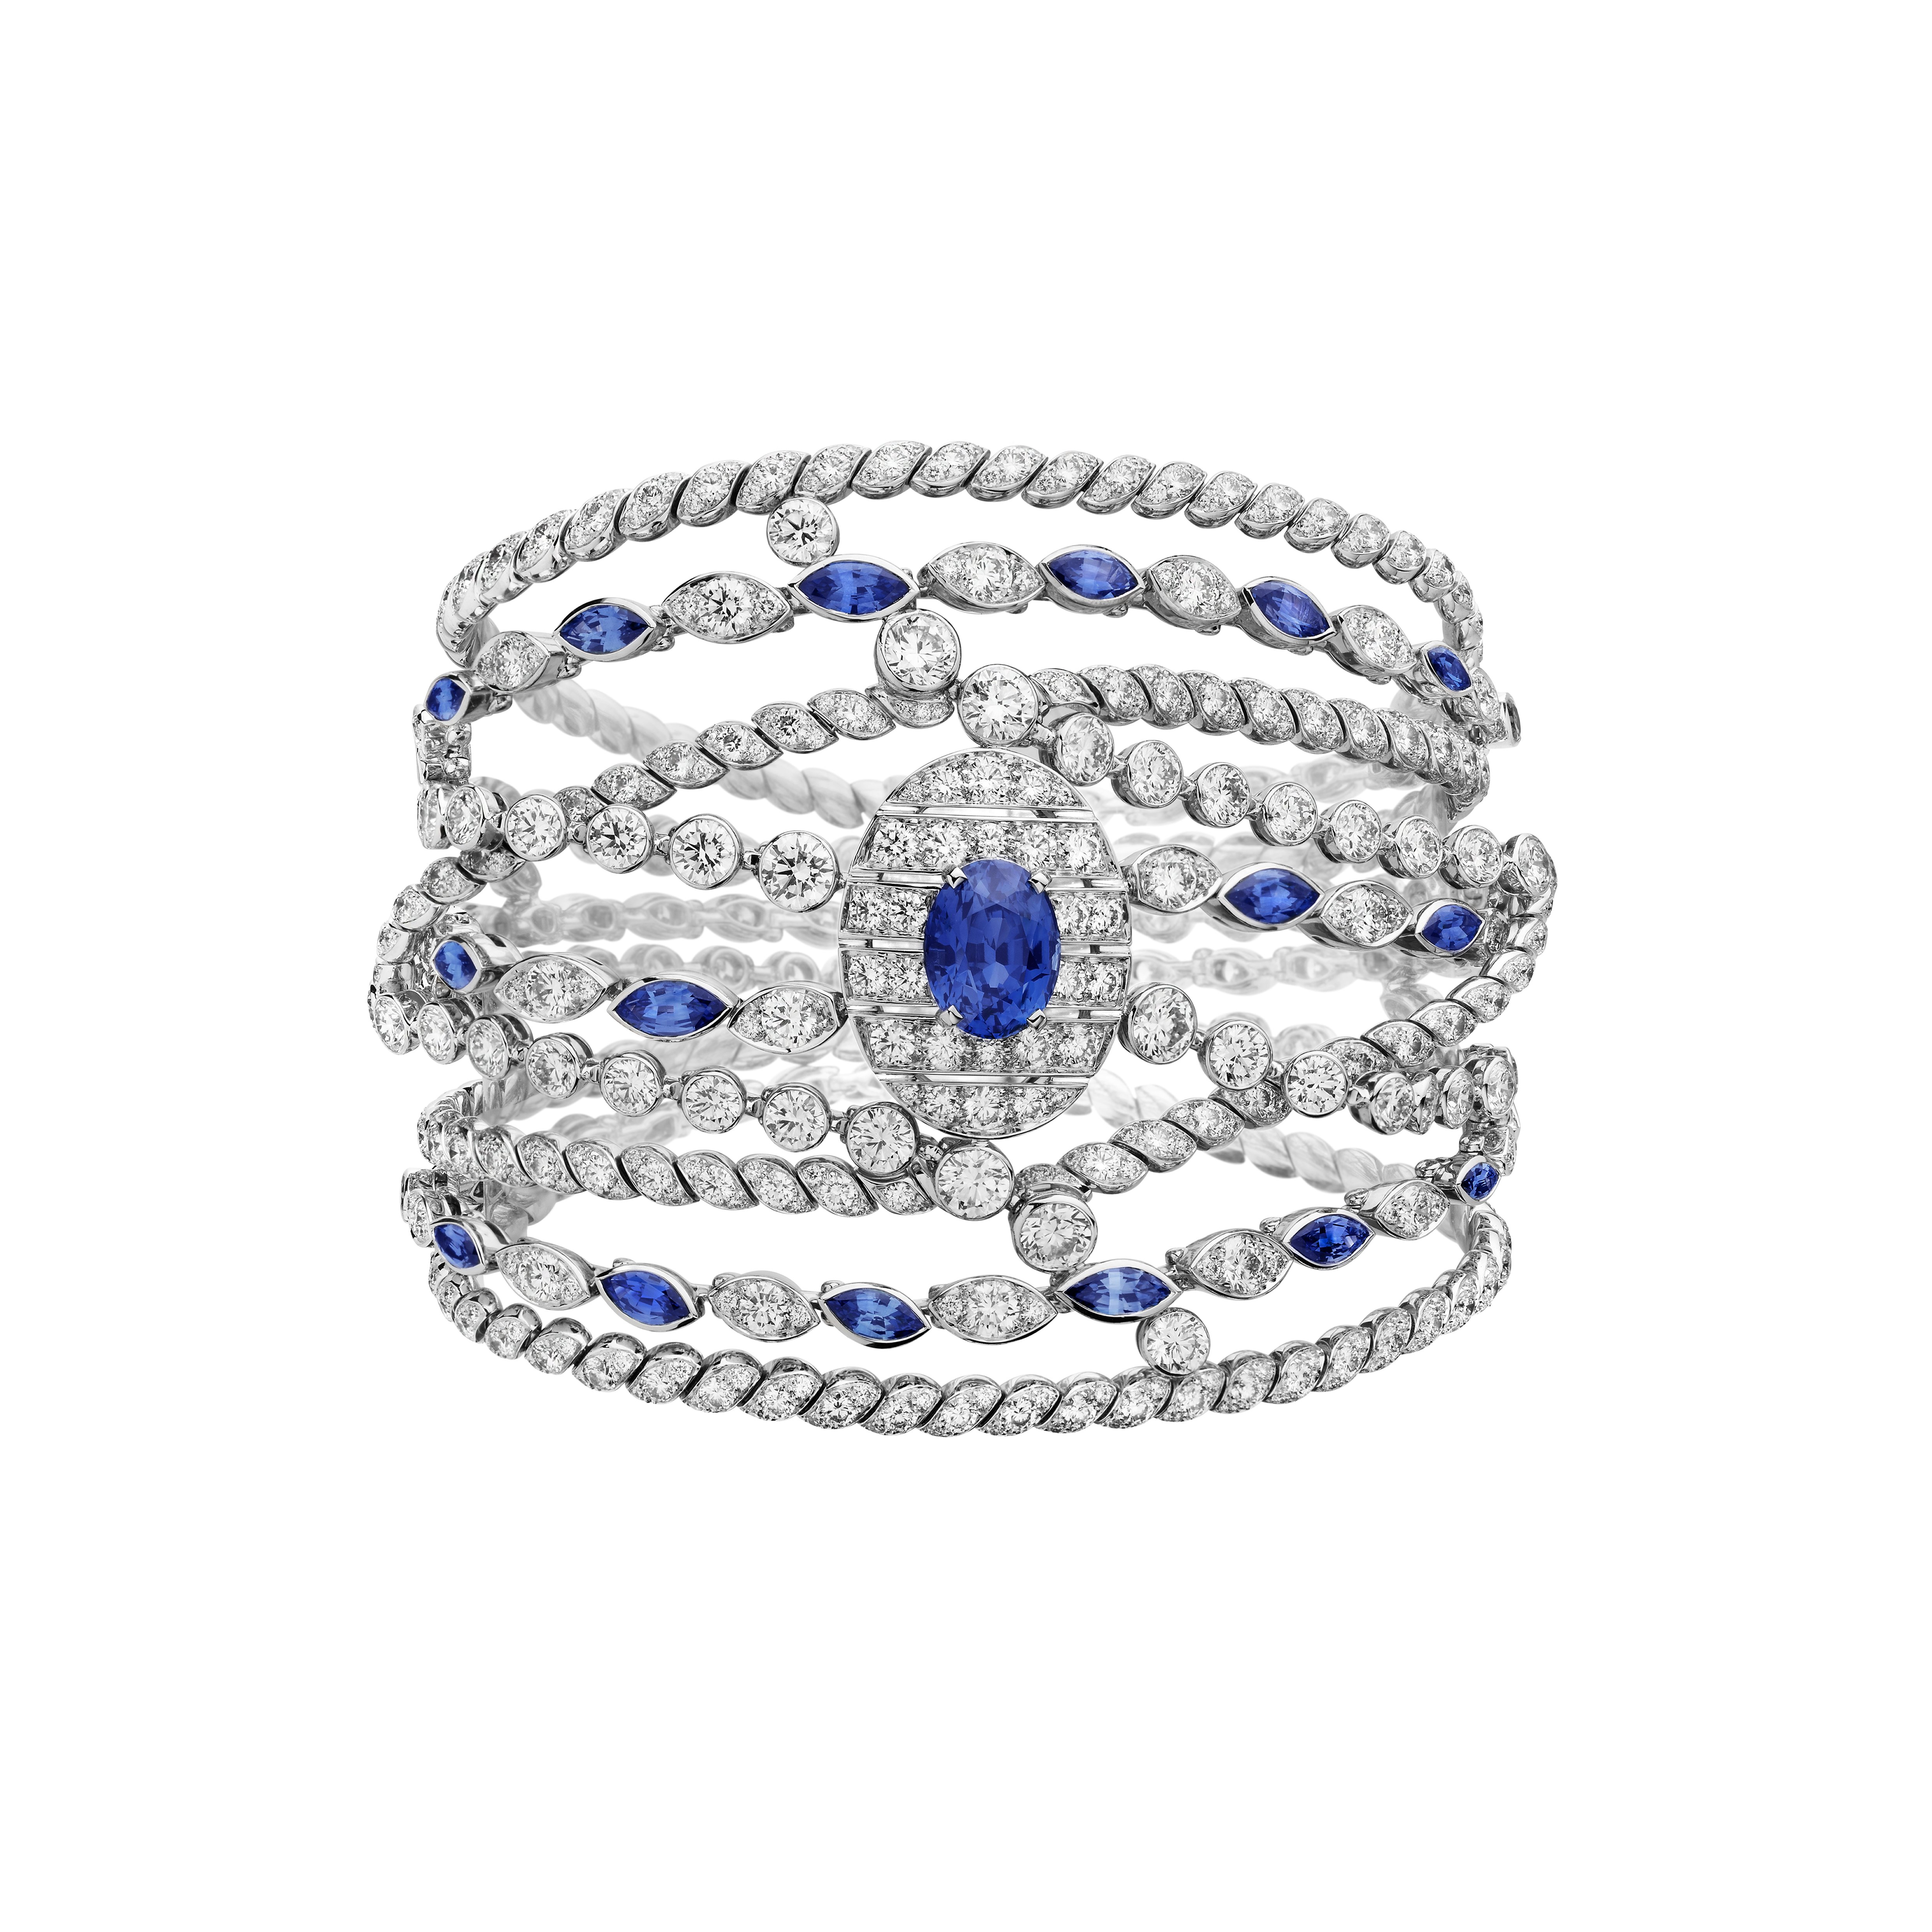 SAPPHIRE-Chanels-Sapphire-Stripes-barceket-from-Flying-Cloud-collection